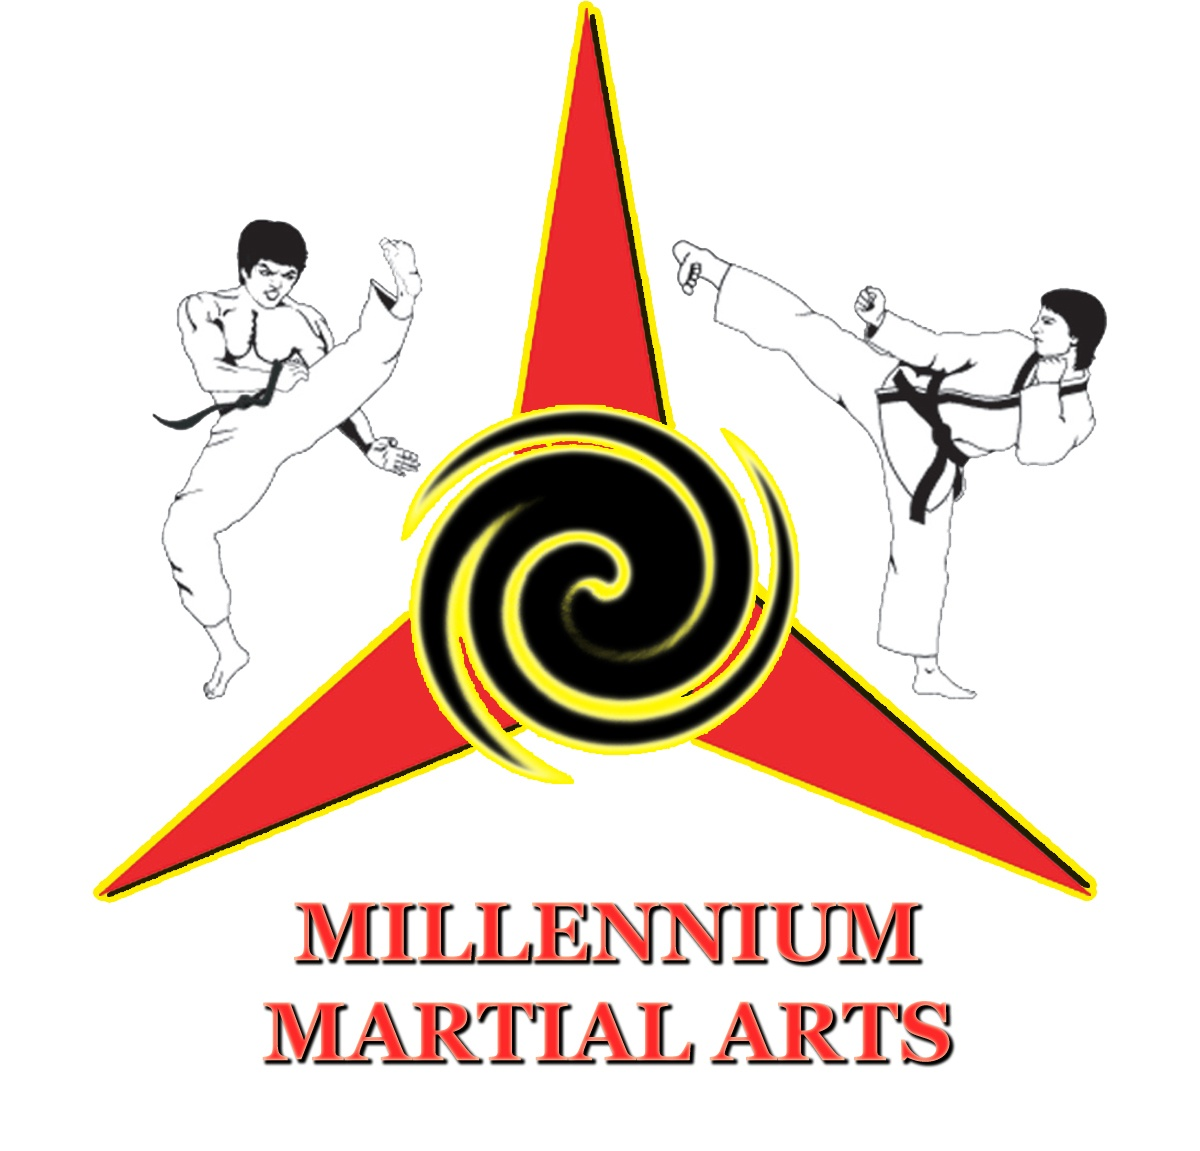 Millennium Of Martial Arts in Vaughan